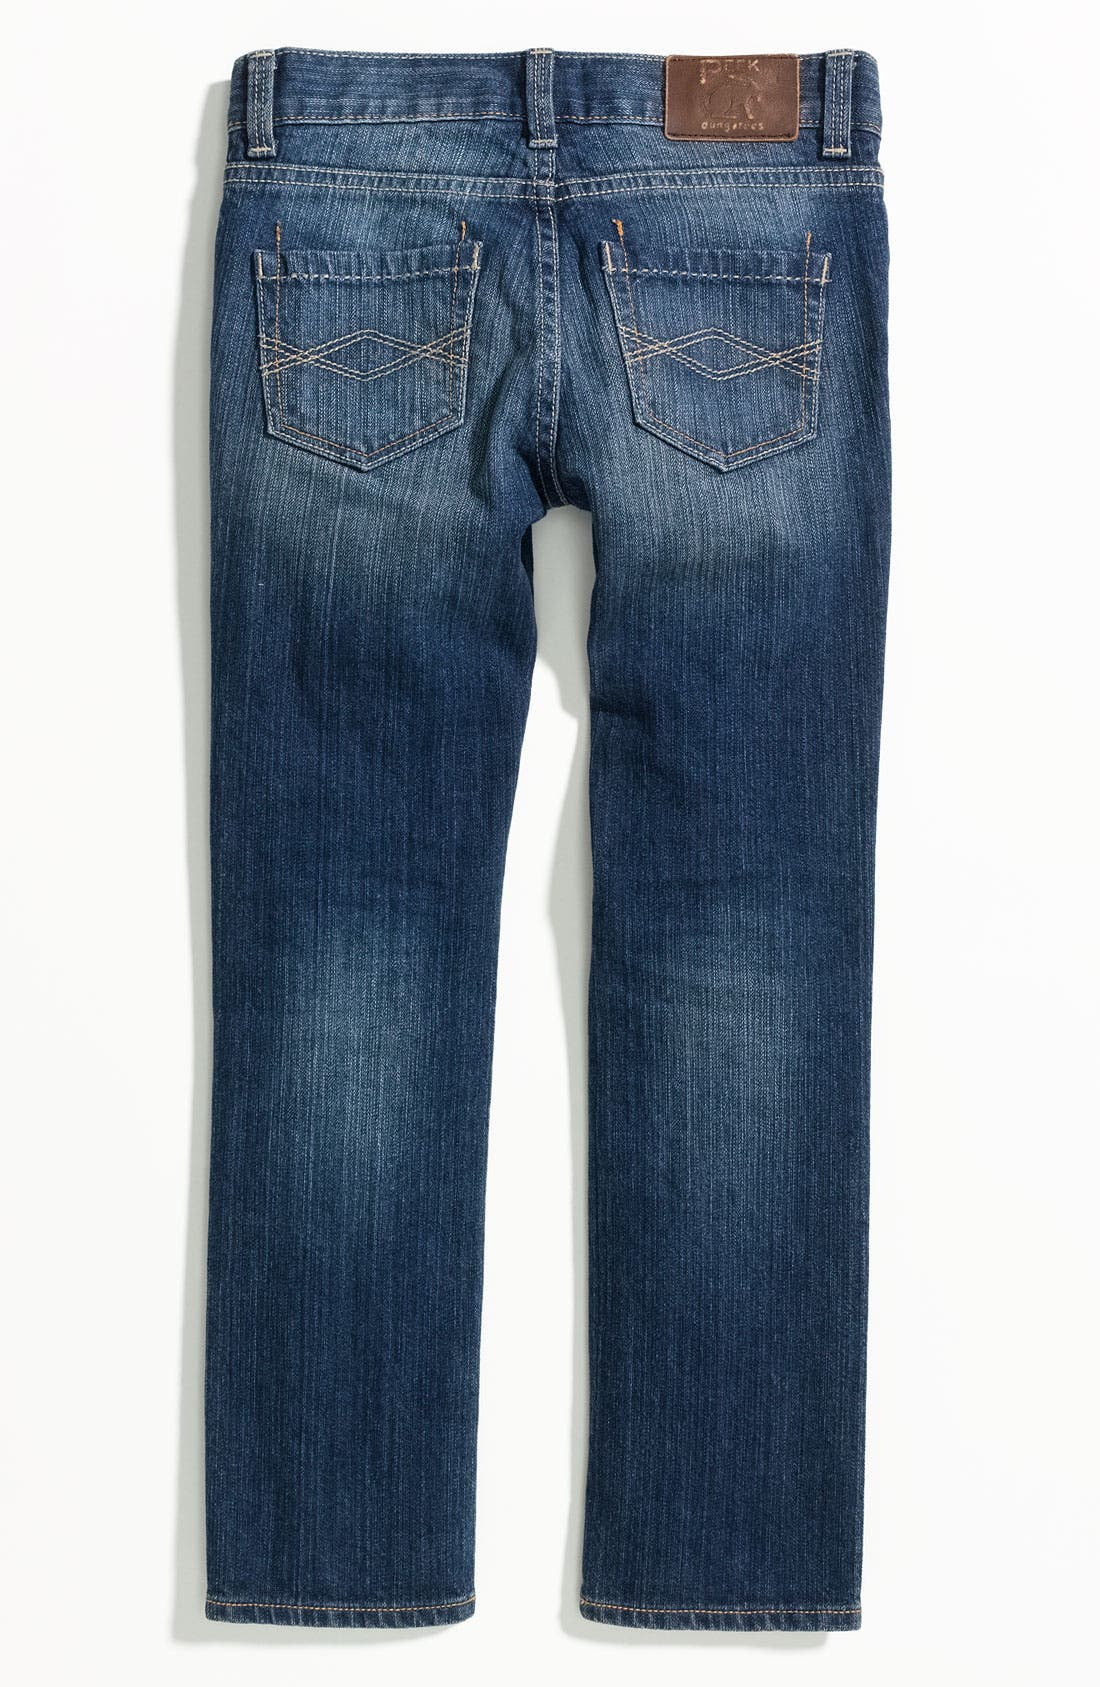 Main Image - Peek 'Audrey' Jeans (Toddler, Little Girls & Big Girls)